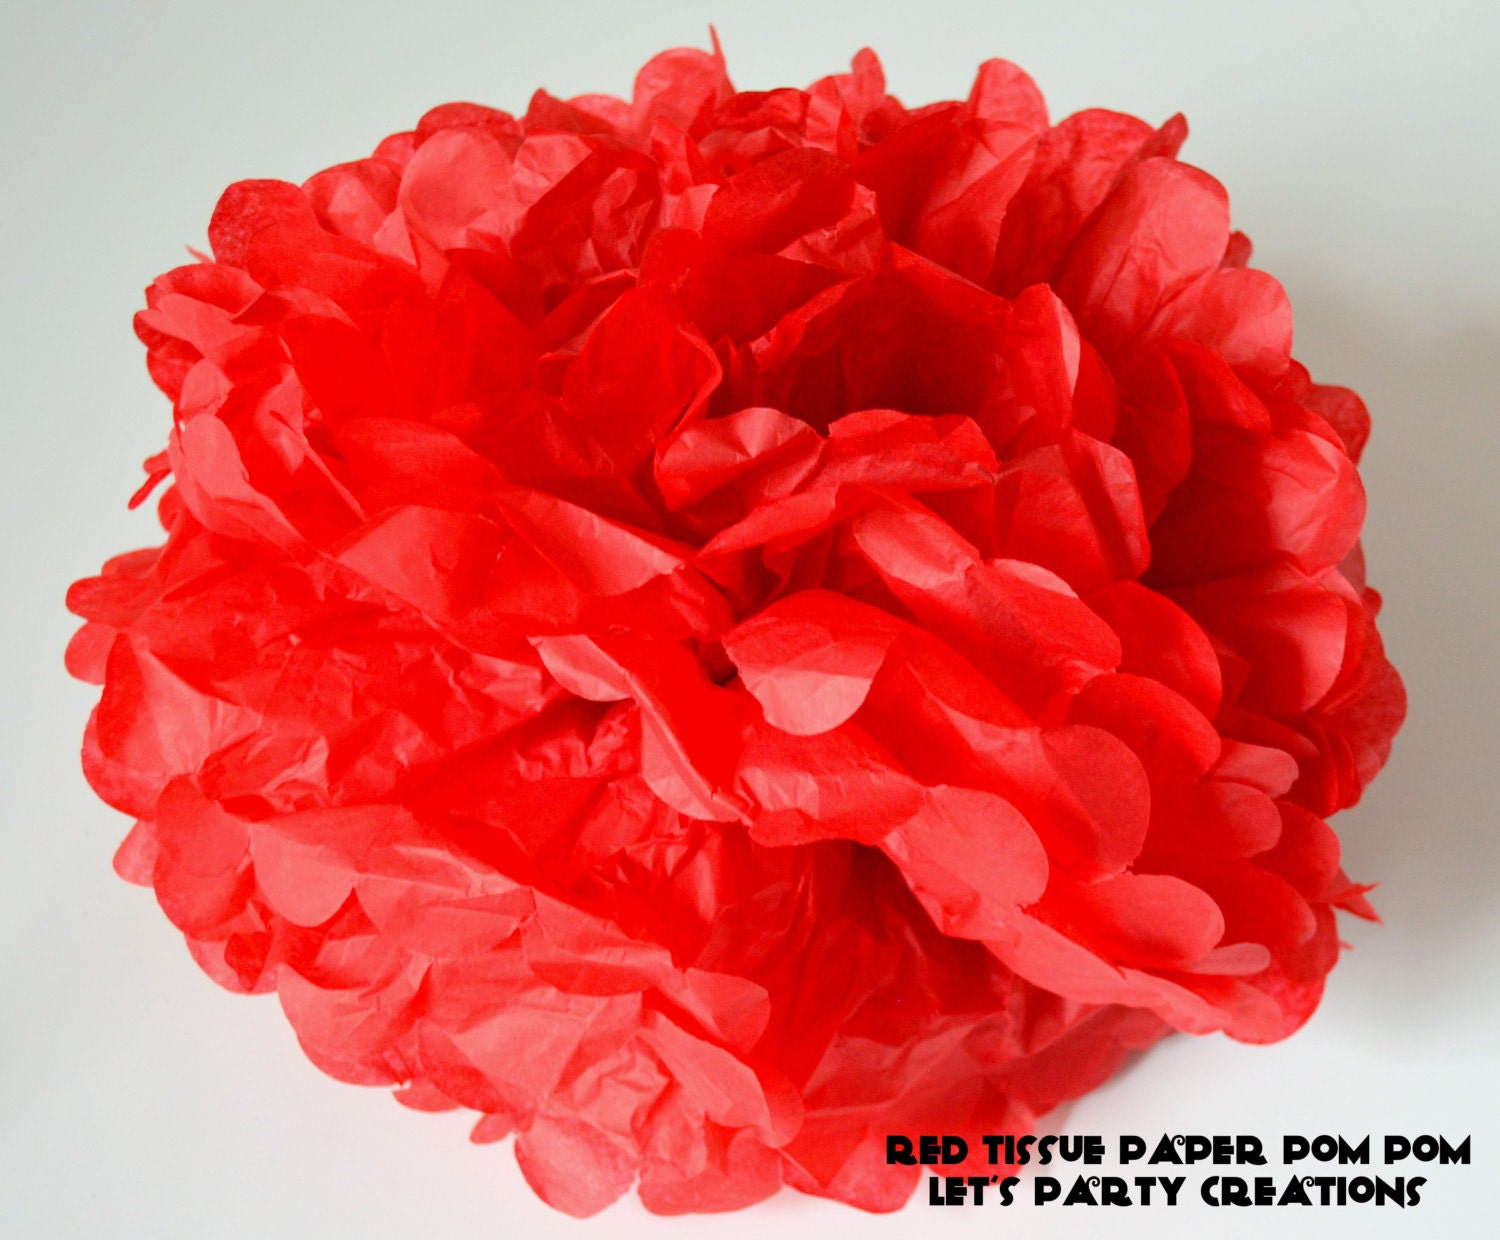 red tissue paper pom pom wedding decorations by. Black Bedroom Furniture Sets. Home Design Ideas